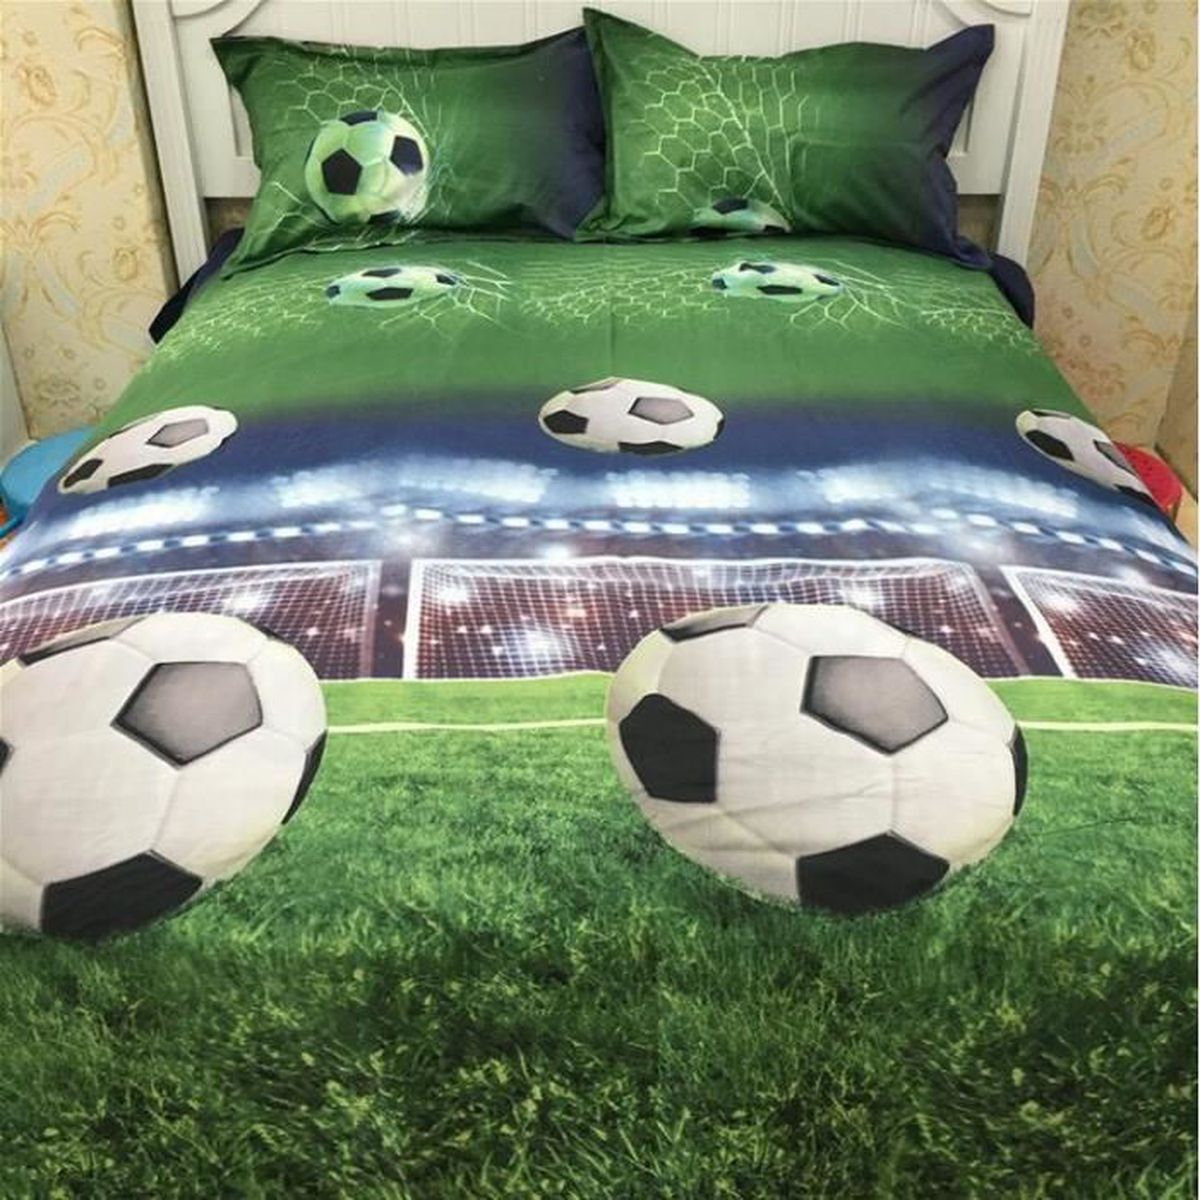 parure de lit football pour 2 personnes 3d effect polyester 200 230cm 4 pieces achat vente. Black Bedroom Furniture Sets. Home Design Ideas